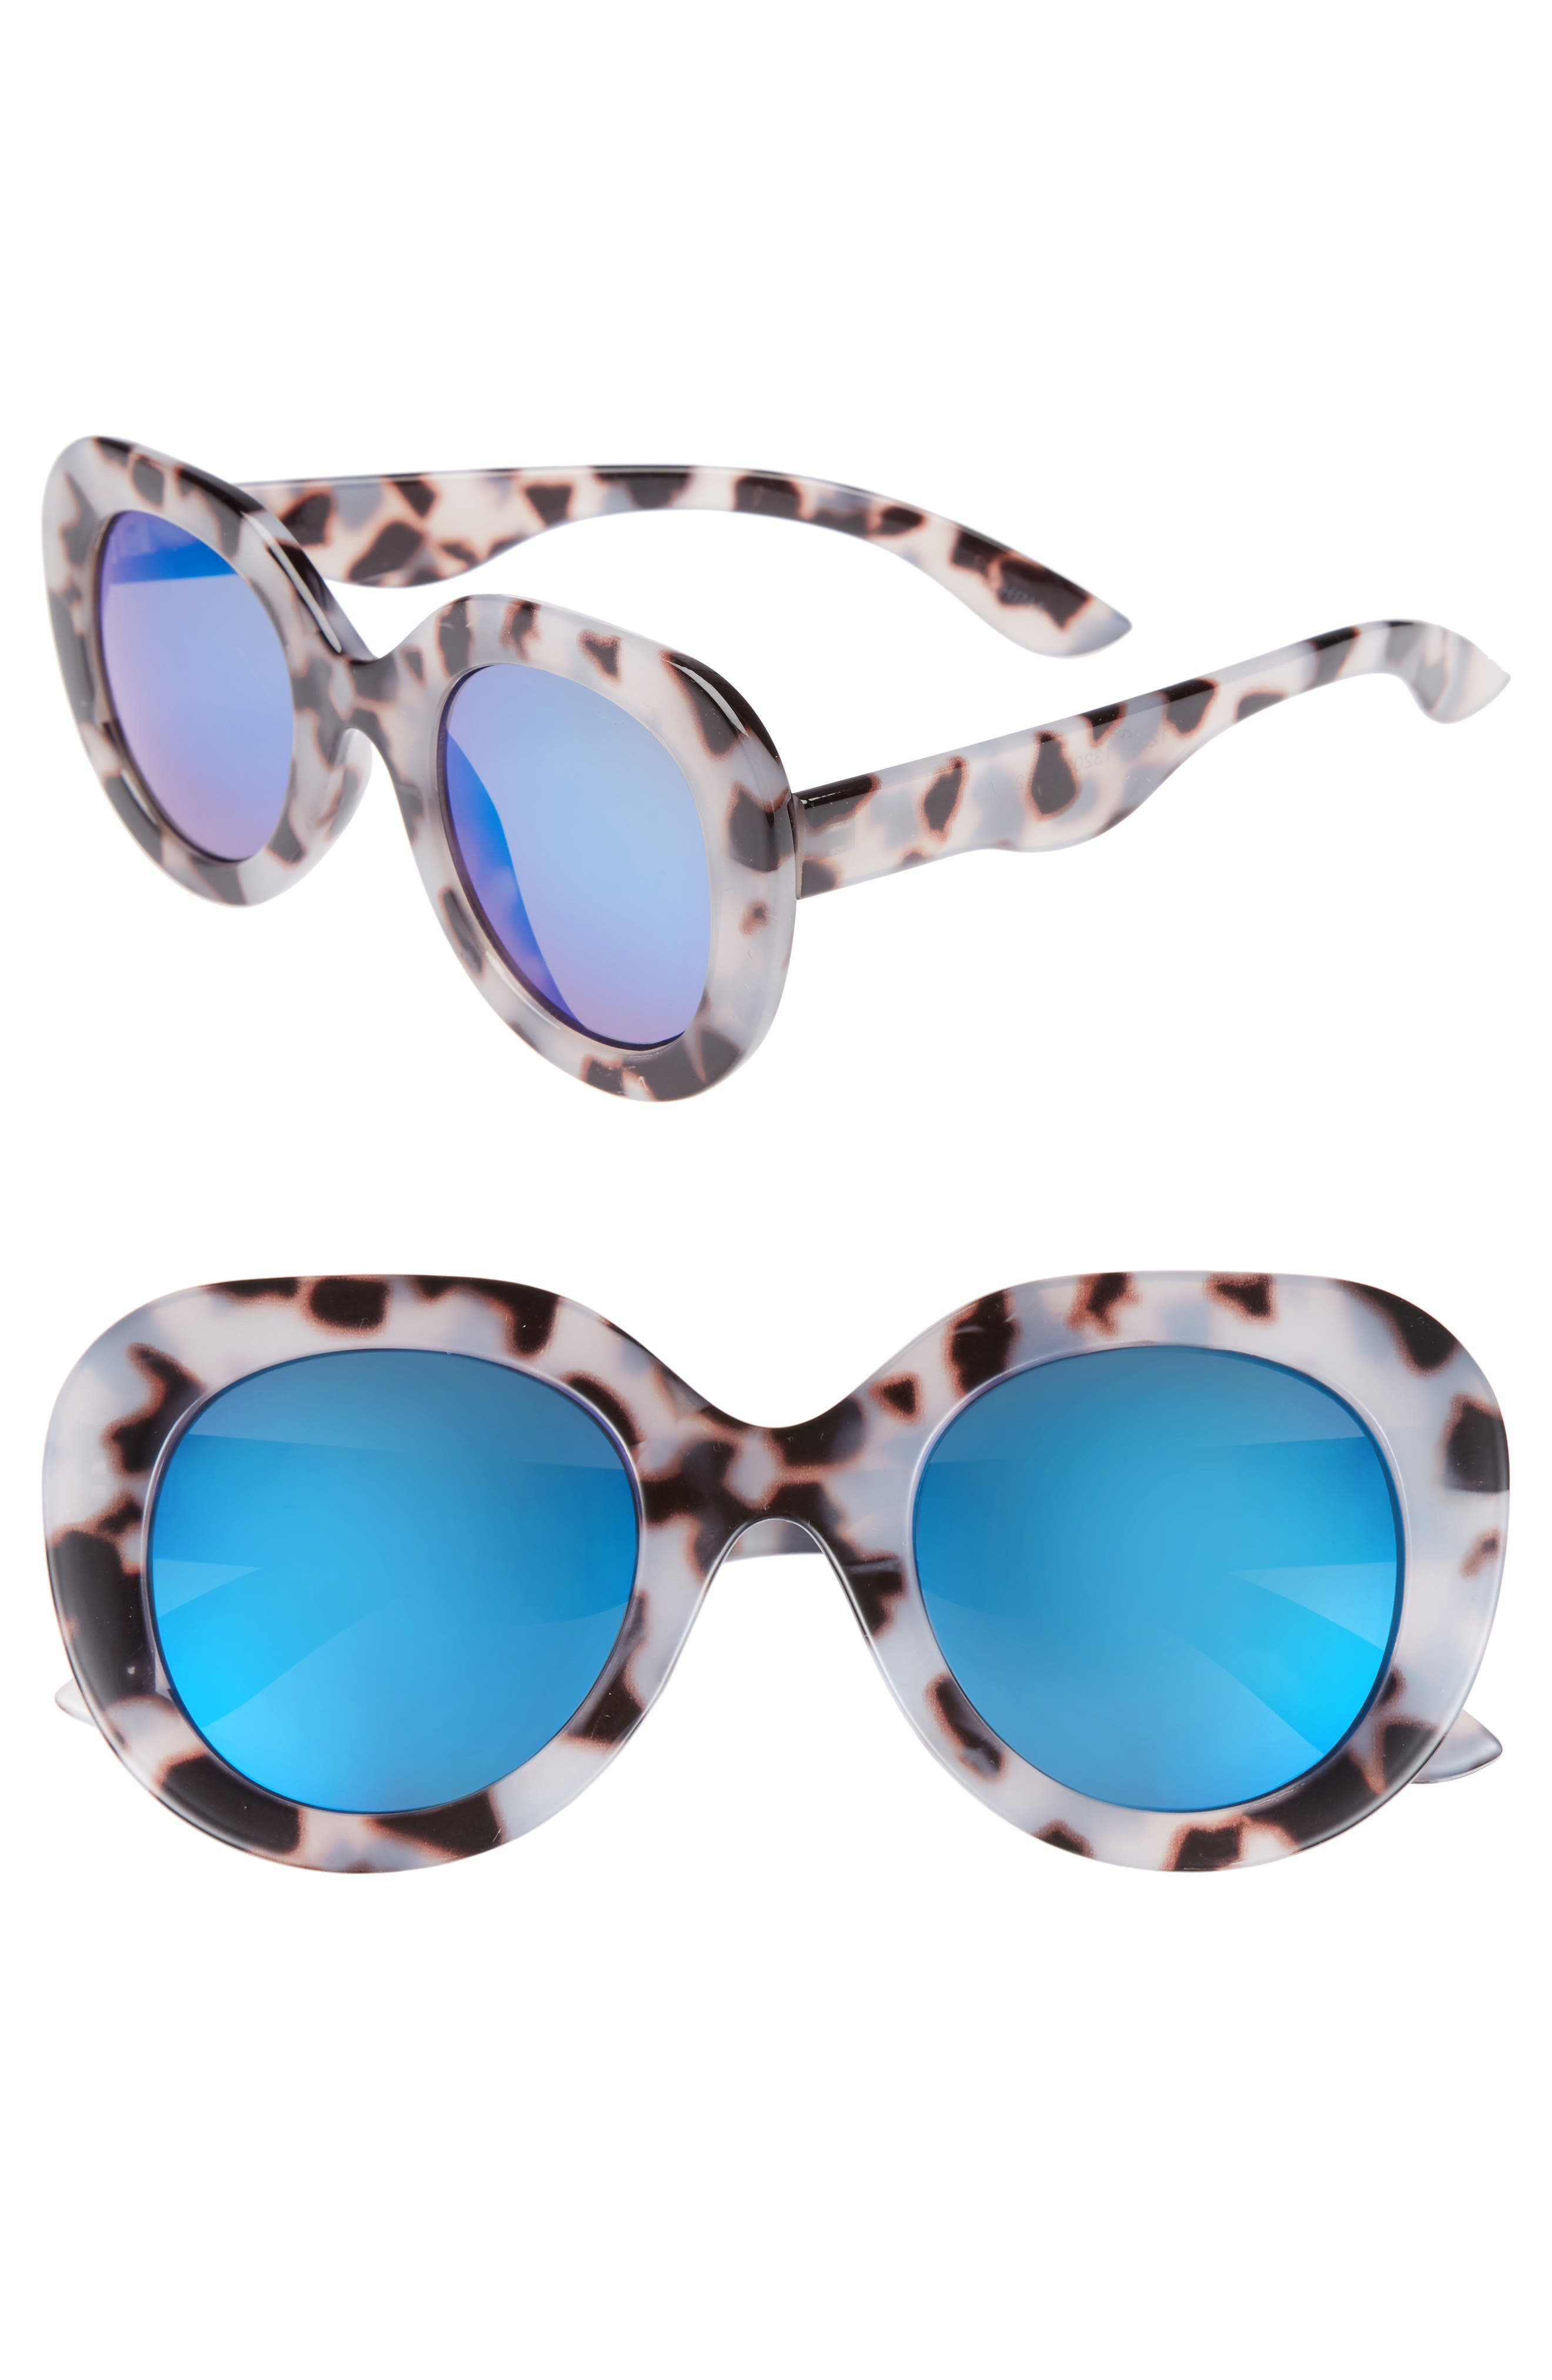 48mm Tinted Round Sunglasses,                         Main,                         color, Tort/ Blue